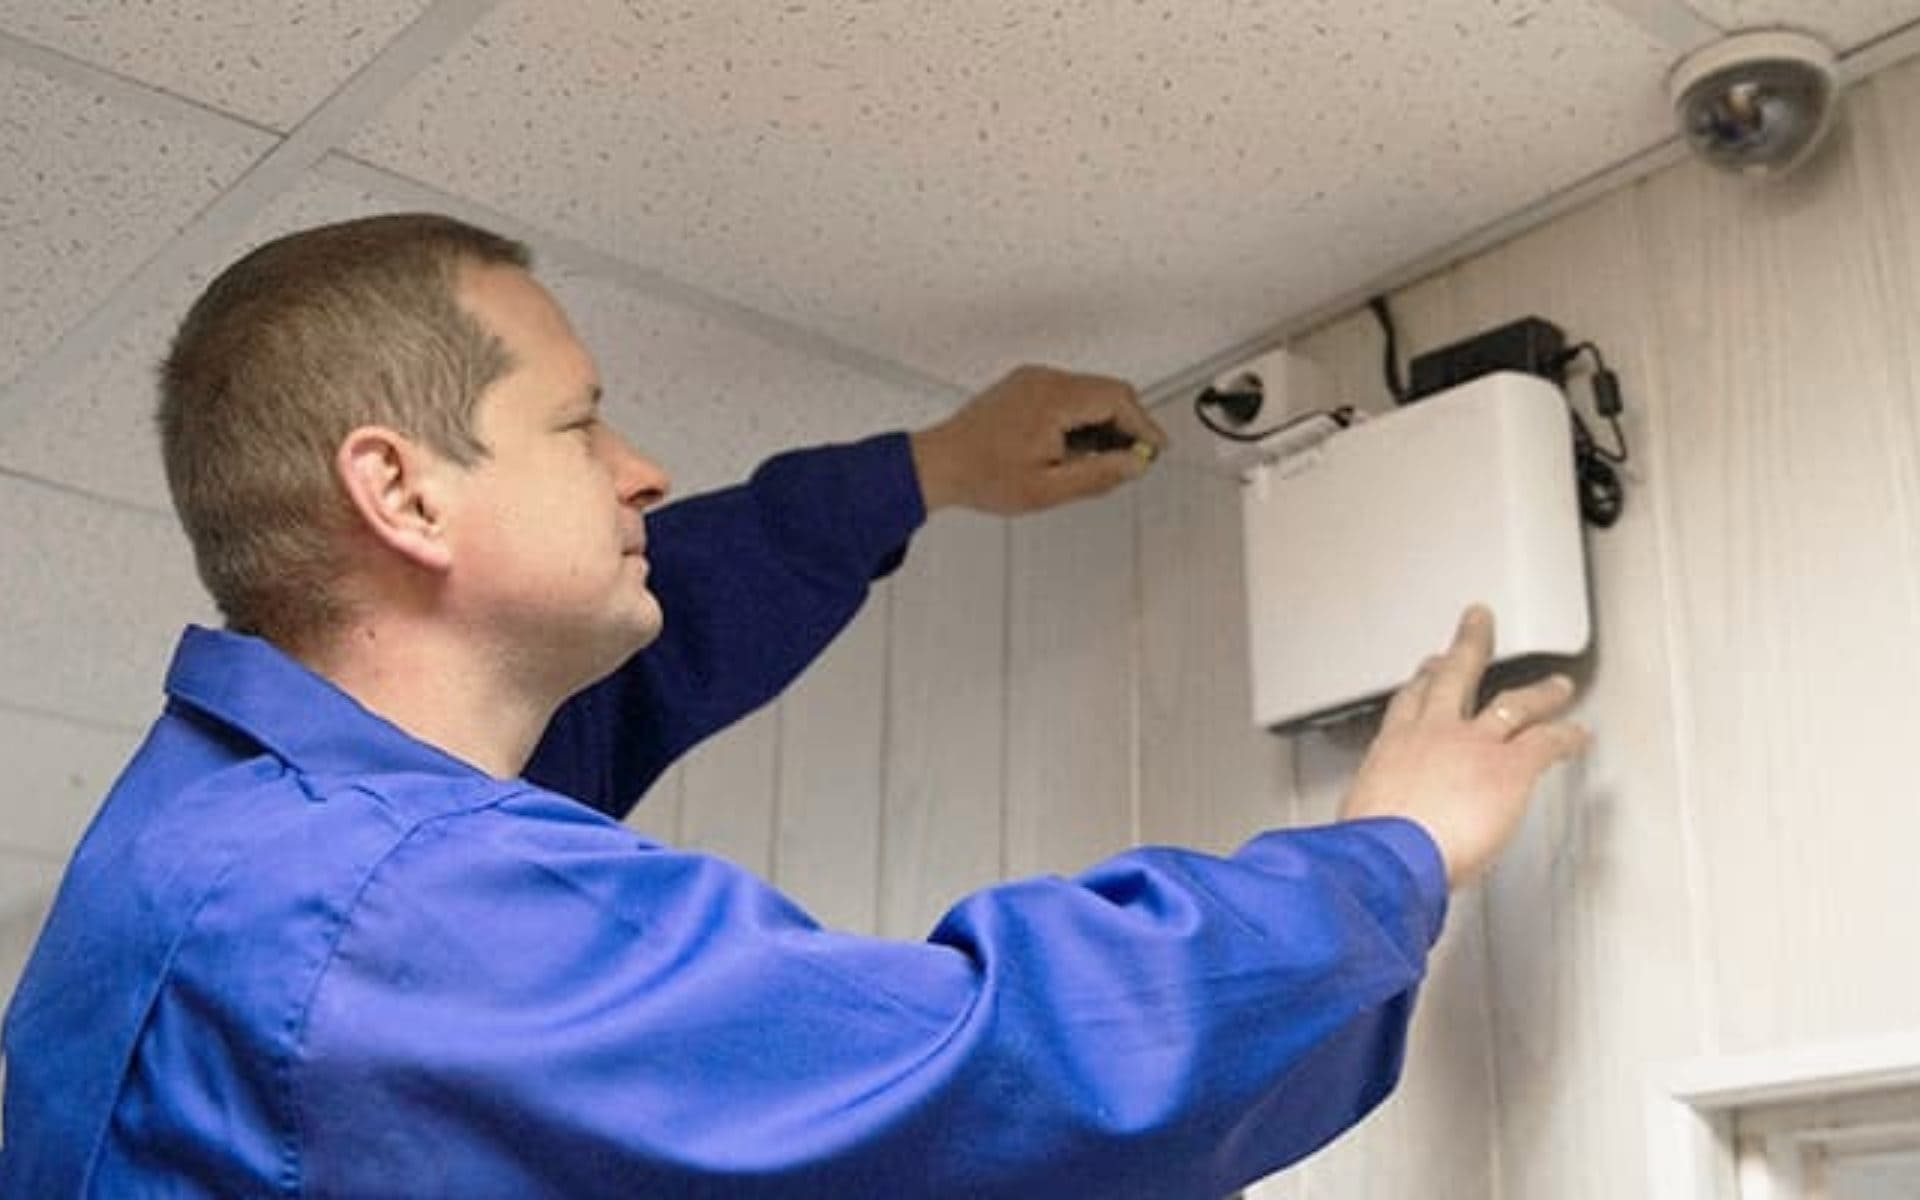 Installation Of Security Alarm